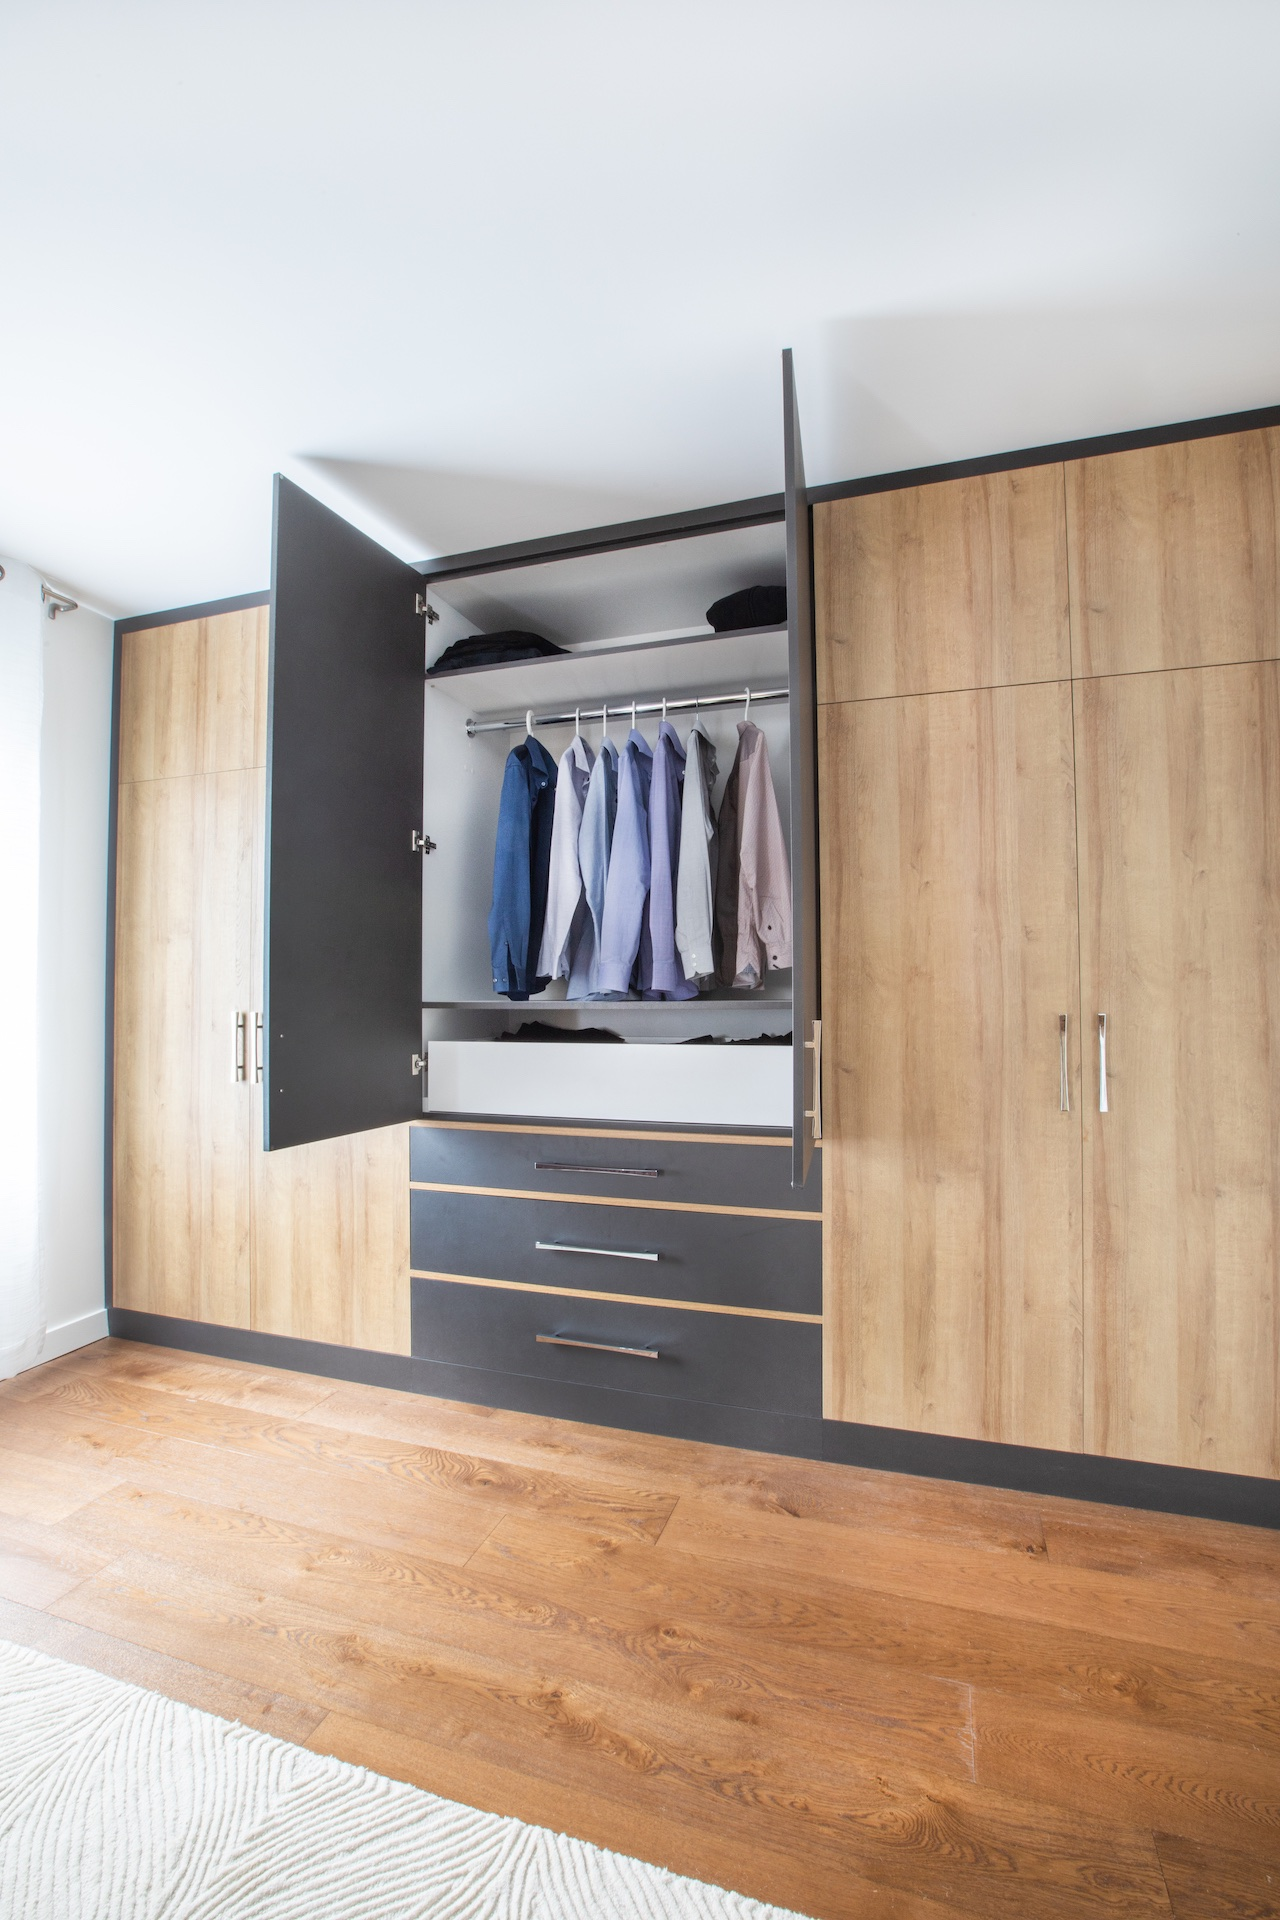 wood wardrobe with open doors and shirts